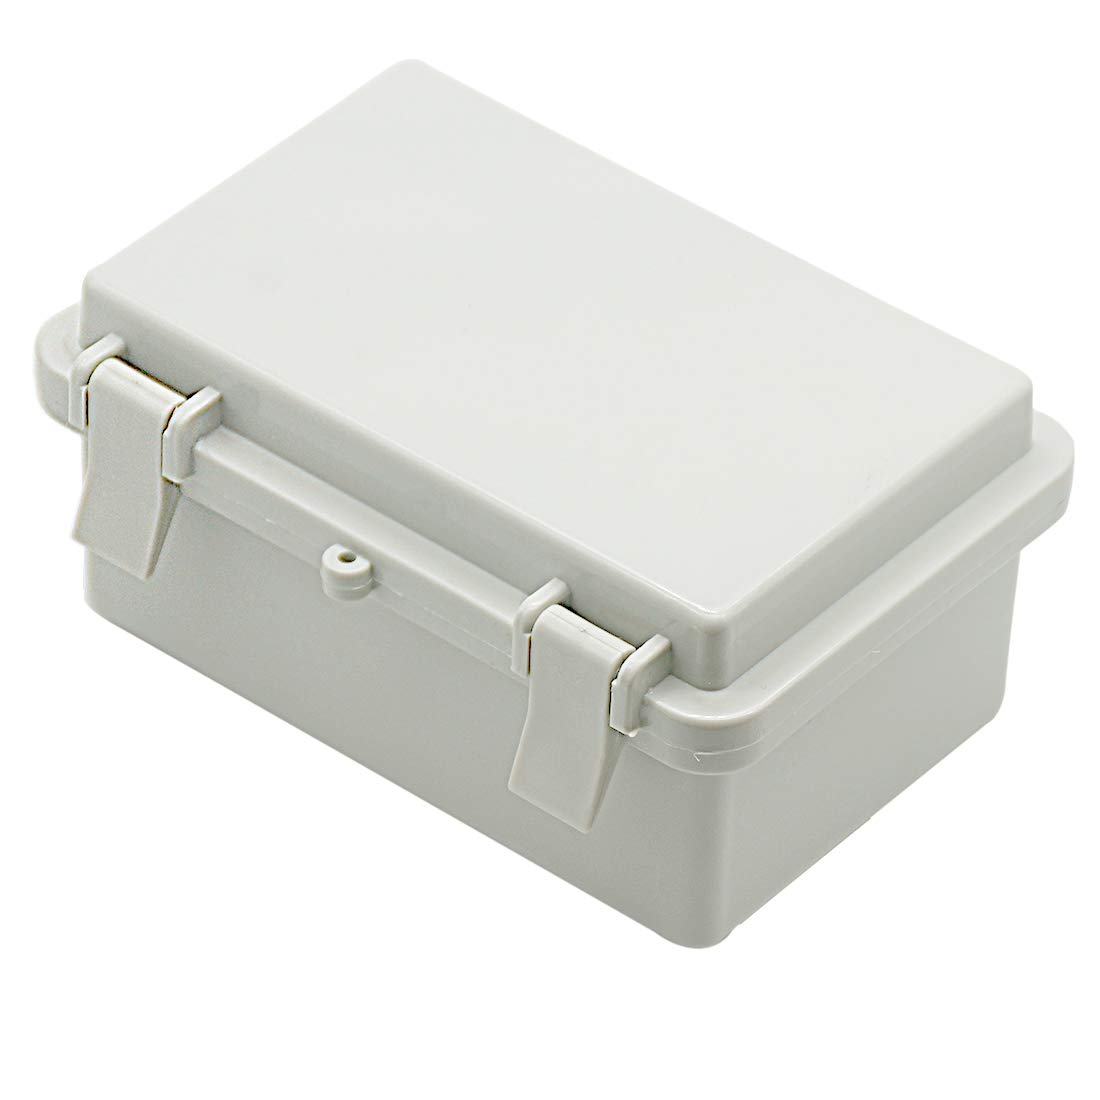 Zulkit Junction Box ABS Plastic Waterproof Electr IP65 Max 59% OFF Dustproof Safety and trust